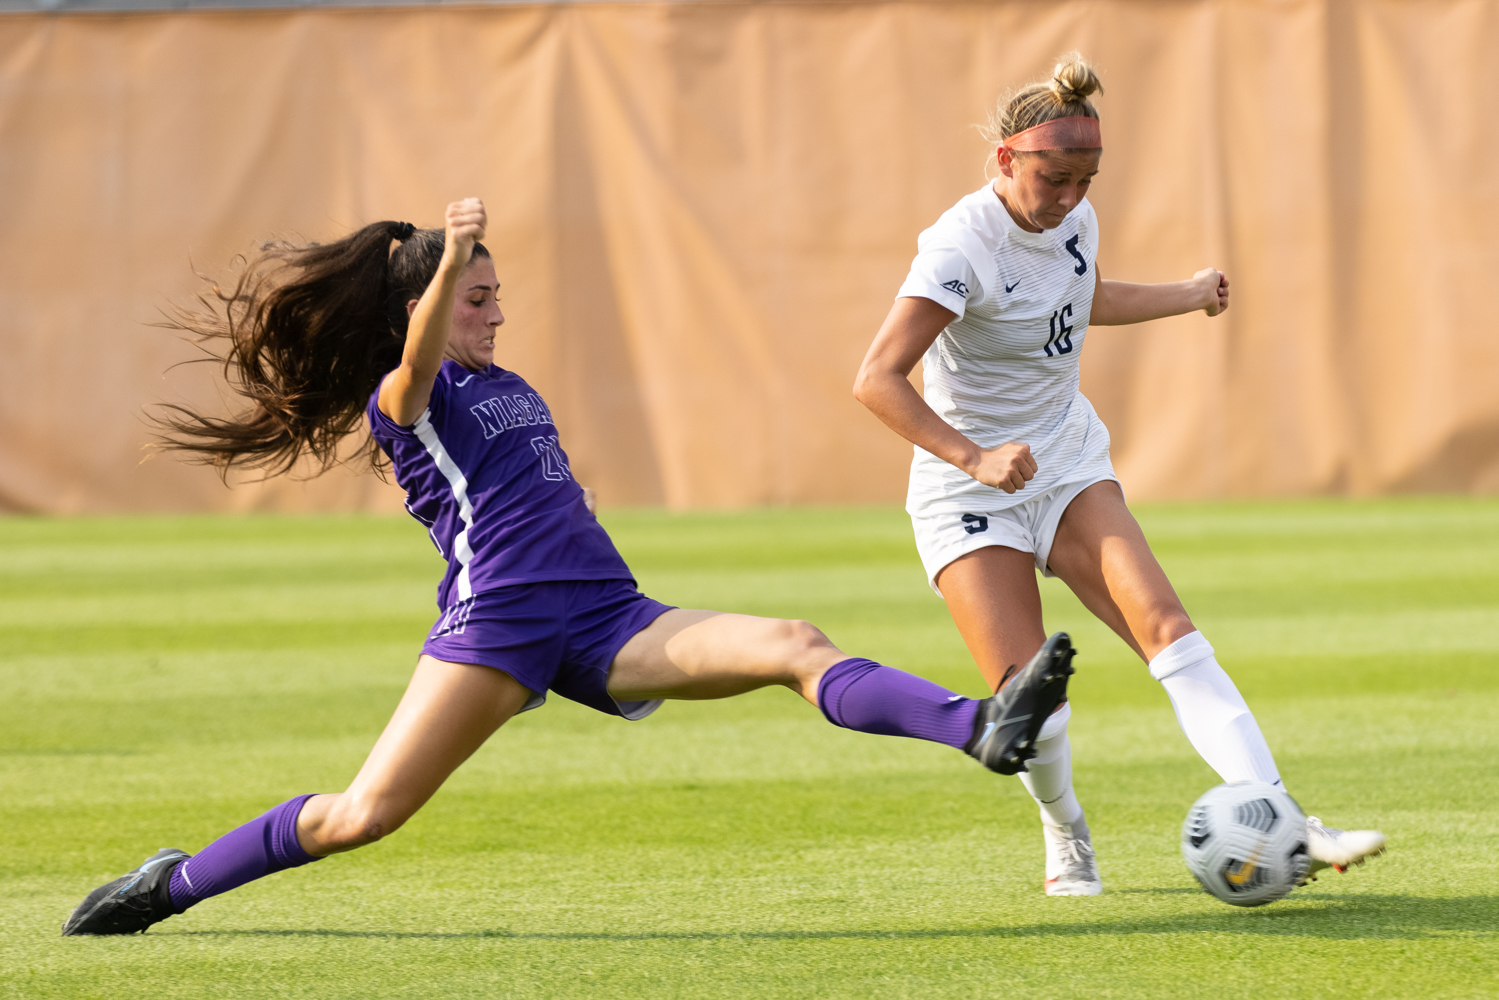 Niagra's Ida Miceli comes flying in for a slide tackle to try and take possession away from Syracuse's Koby Commandant (16) during an NCAA women's soccer game, Thursday, at Syracuse Soccer Stadium. Niagara defeated Syracuse, 4-2